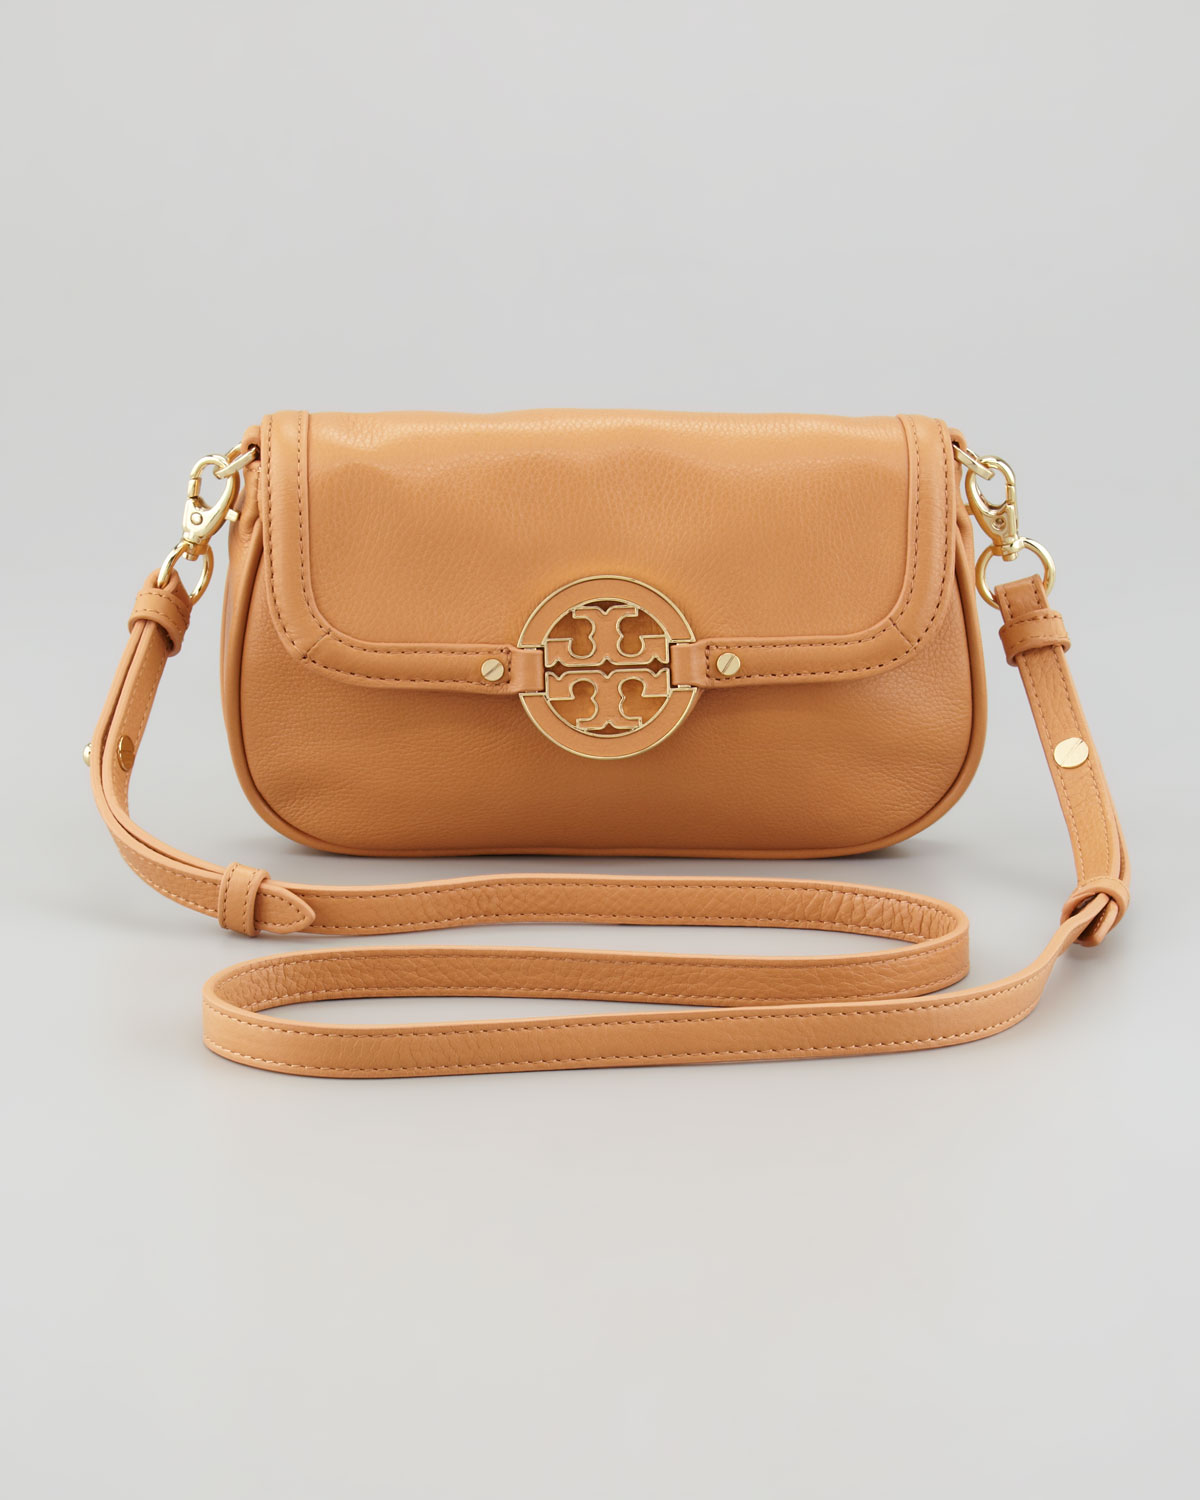 cfb309adeca Gallery. Previously sold at: Neiman Marcus · Women's Tory Burch Amanda